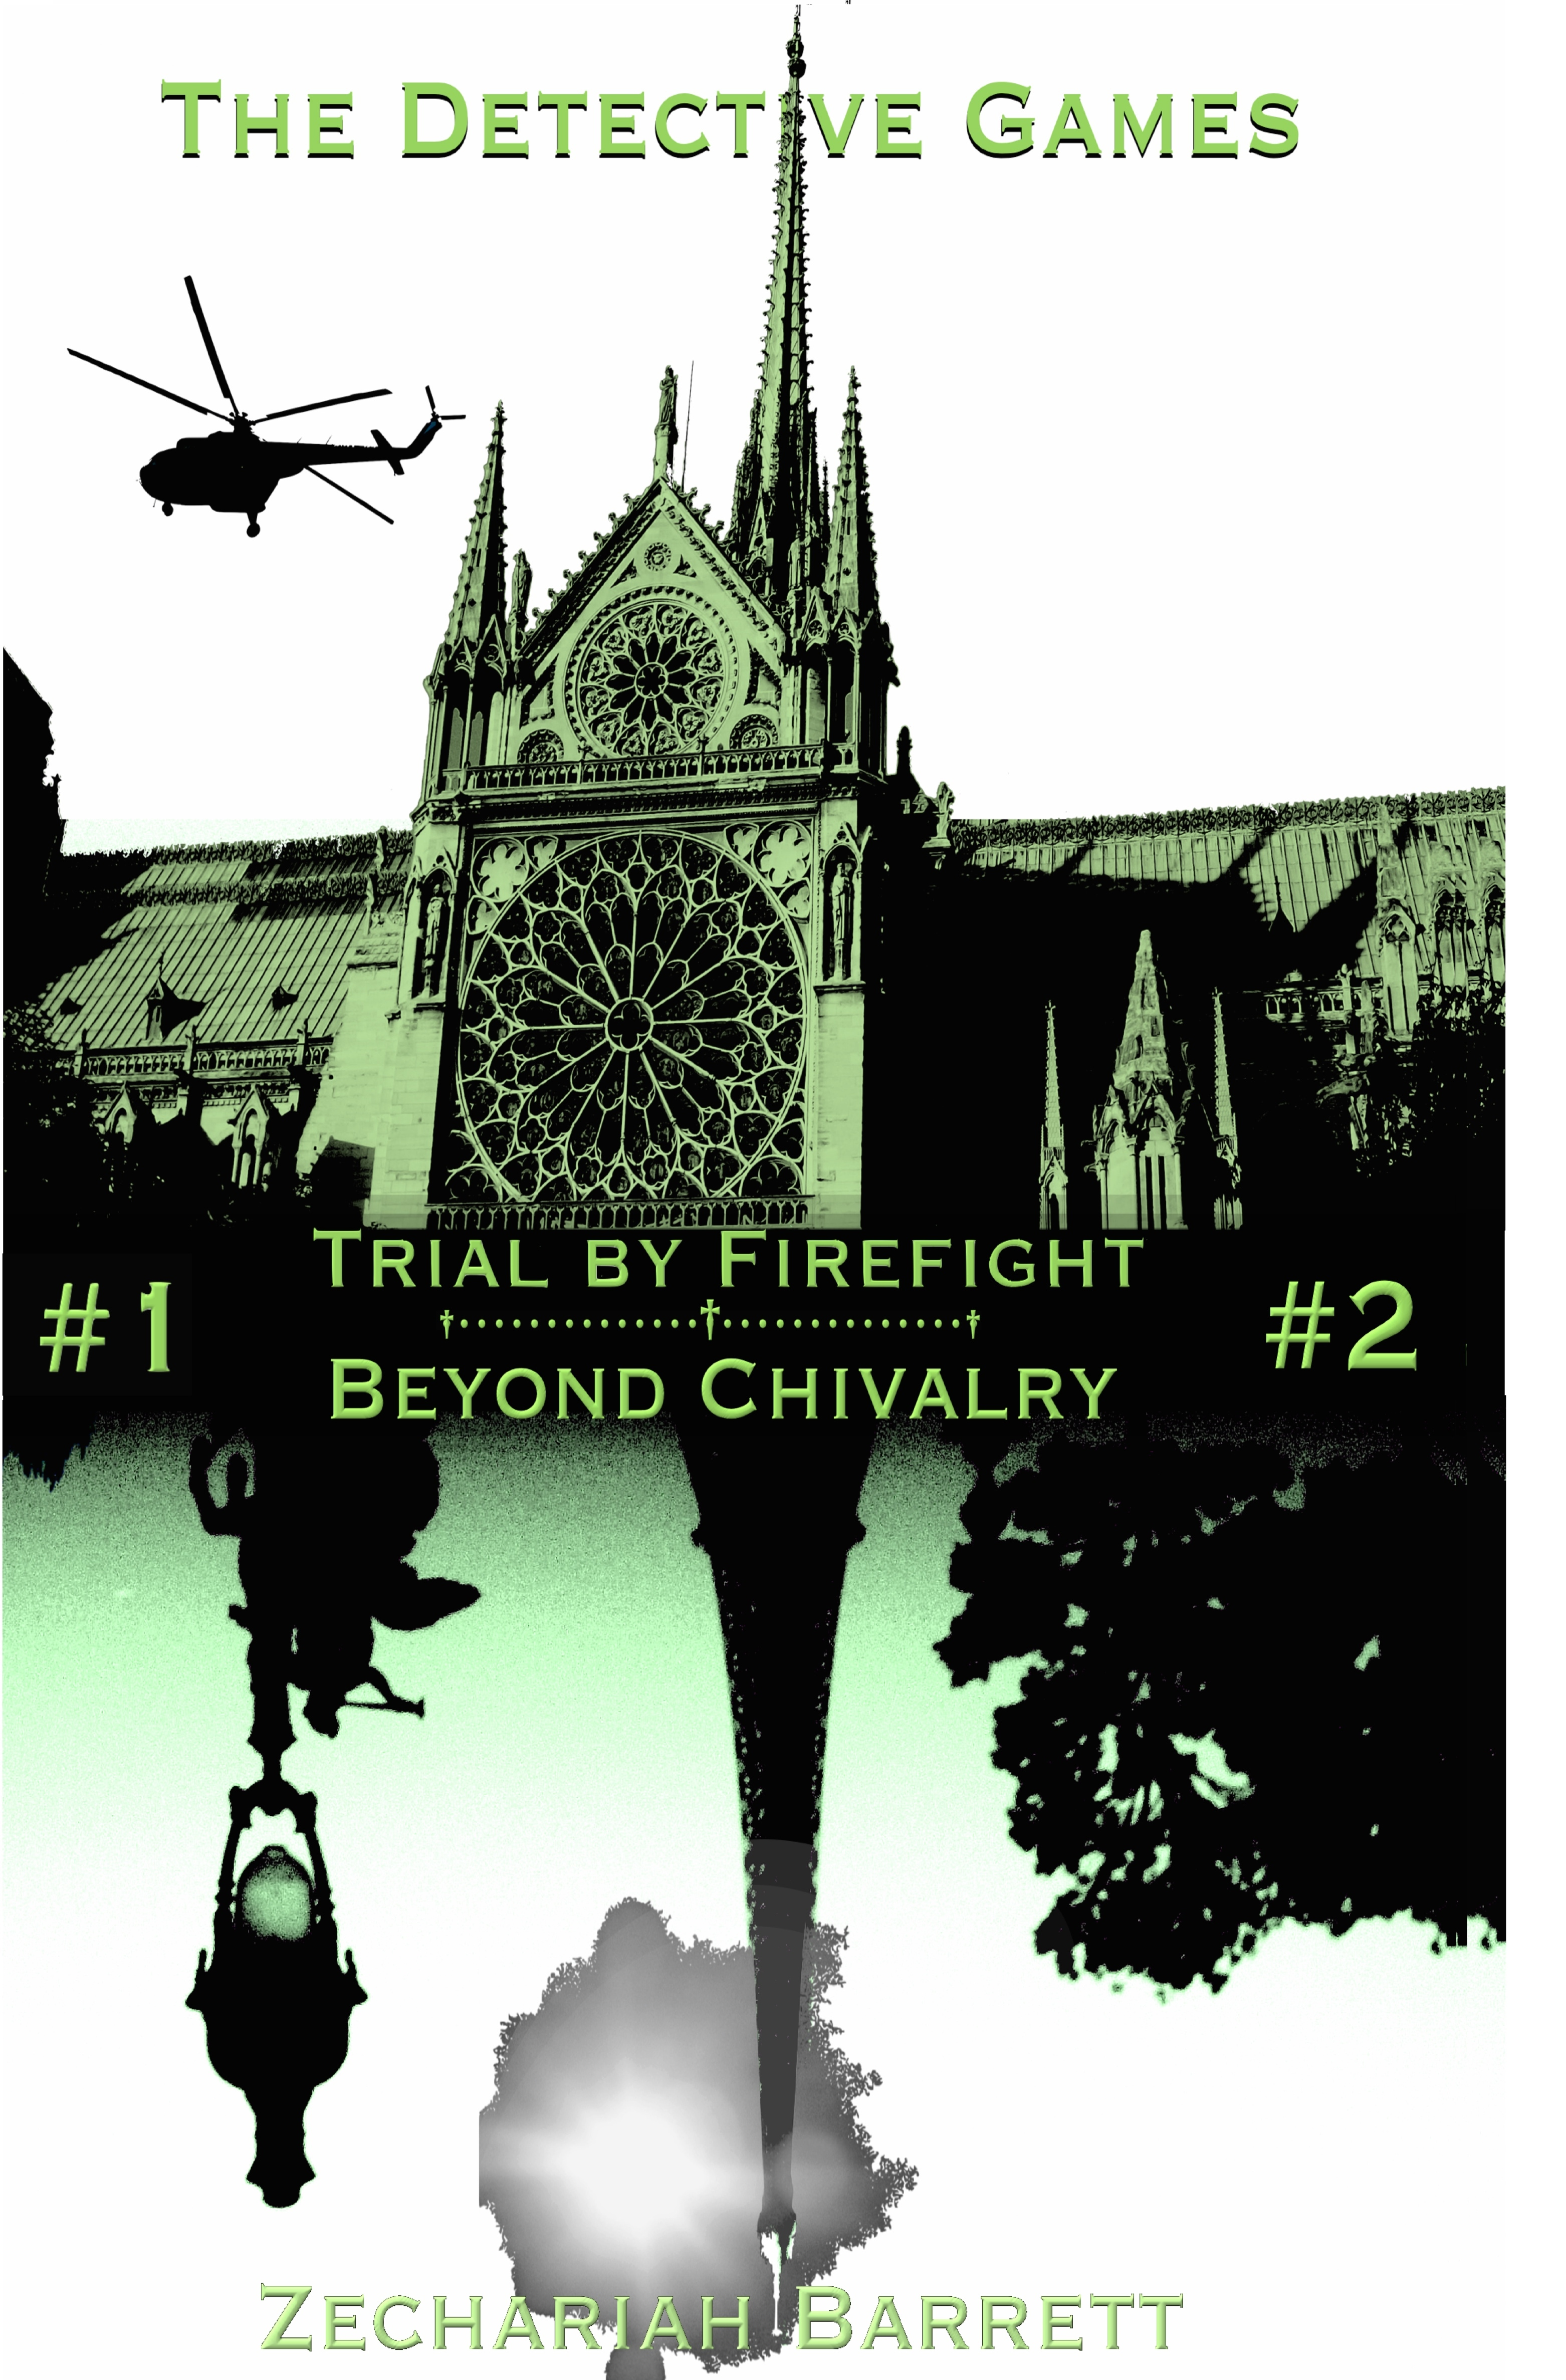 The Detective Games (#1 Trial  by  Firefight | #2 Beyond Chivalry) by Zechariah Barrett